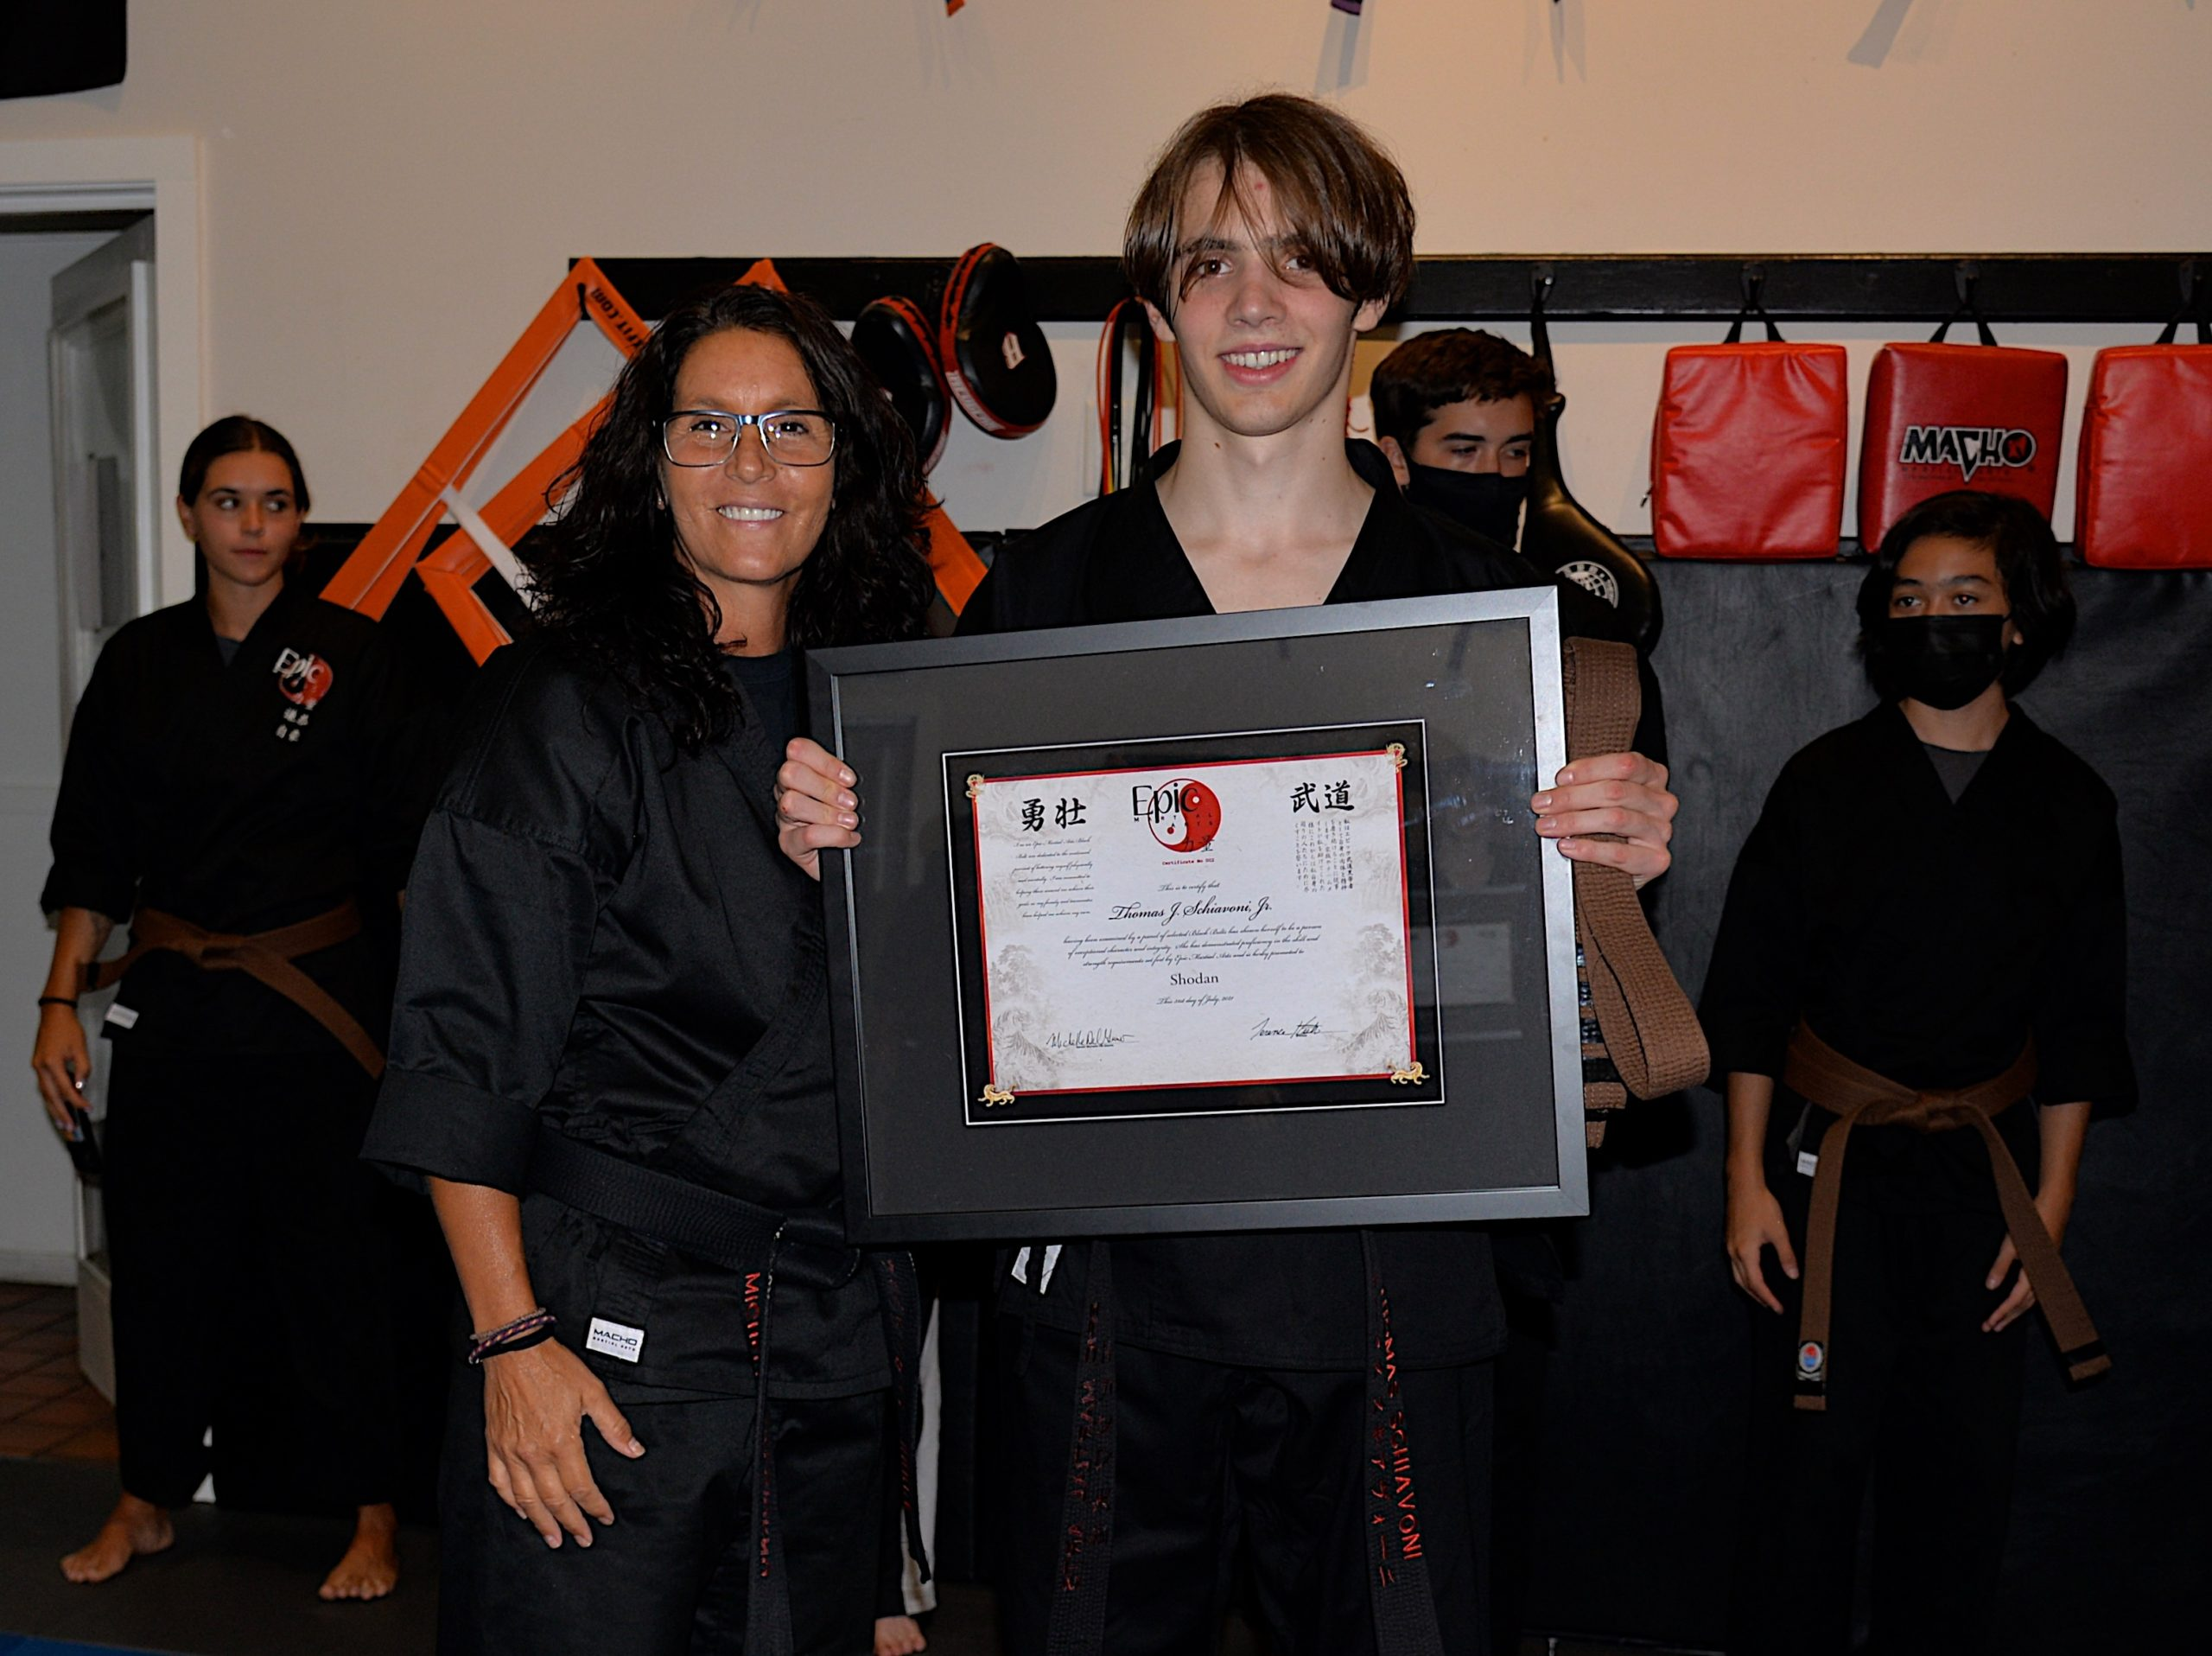 EPIC Martial Arts sensei Michelle Del Giorno with Thomas Schiavoni after he passed his black belt test this past Saturday.